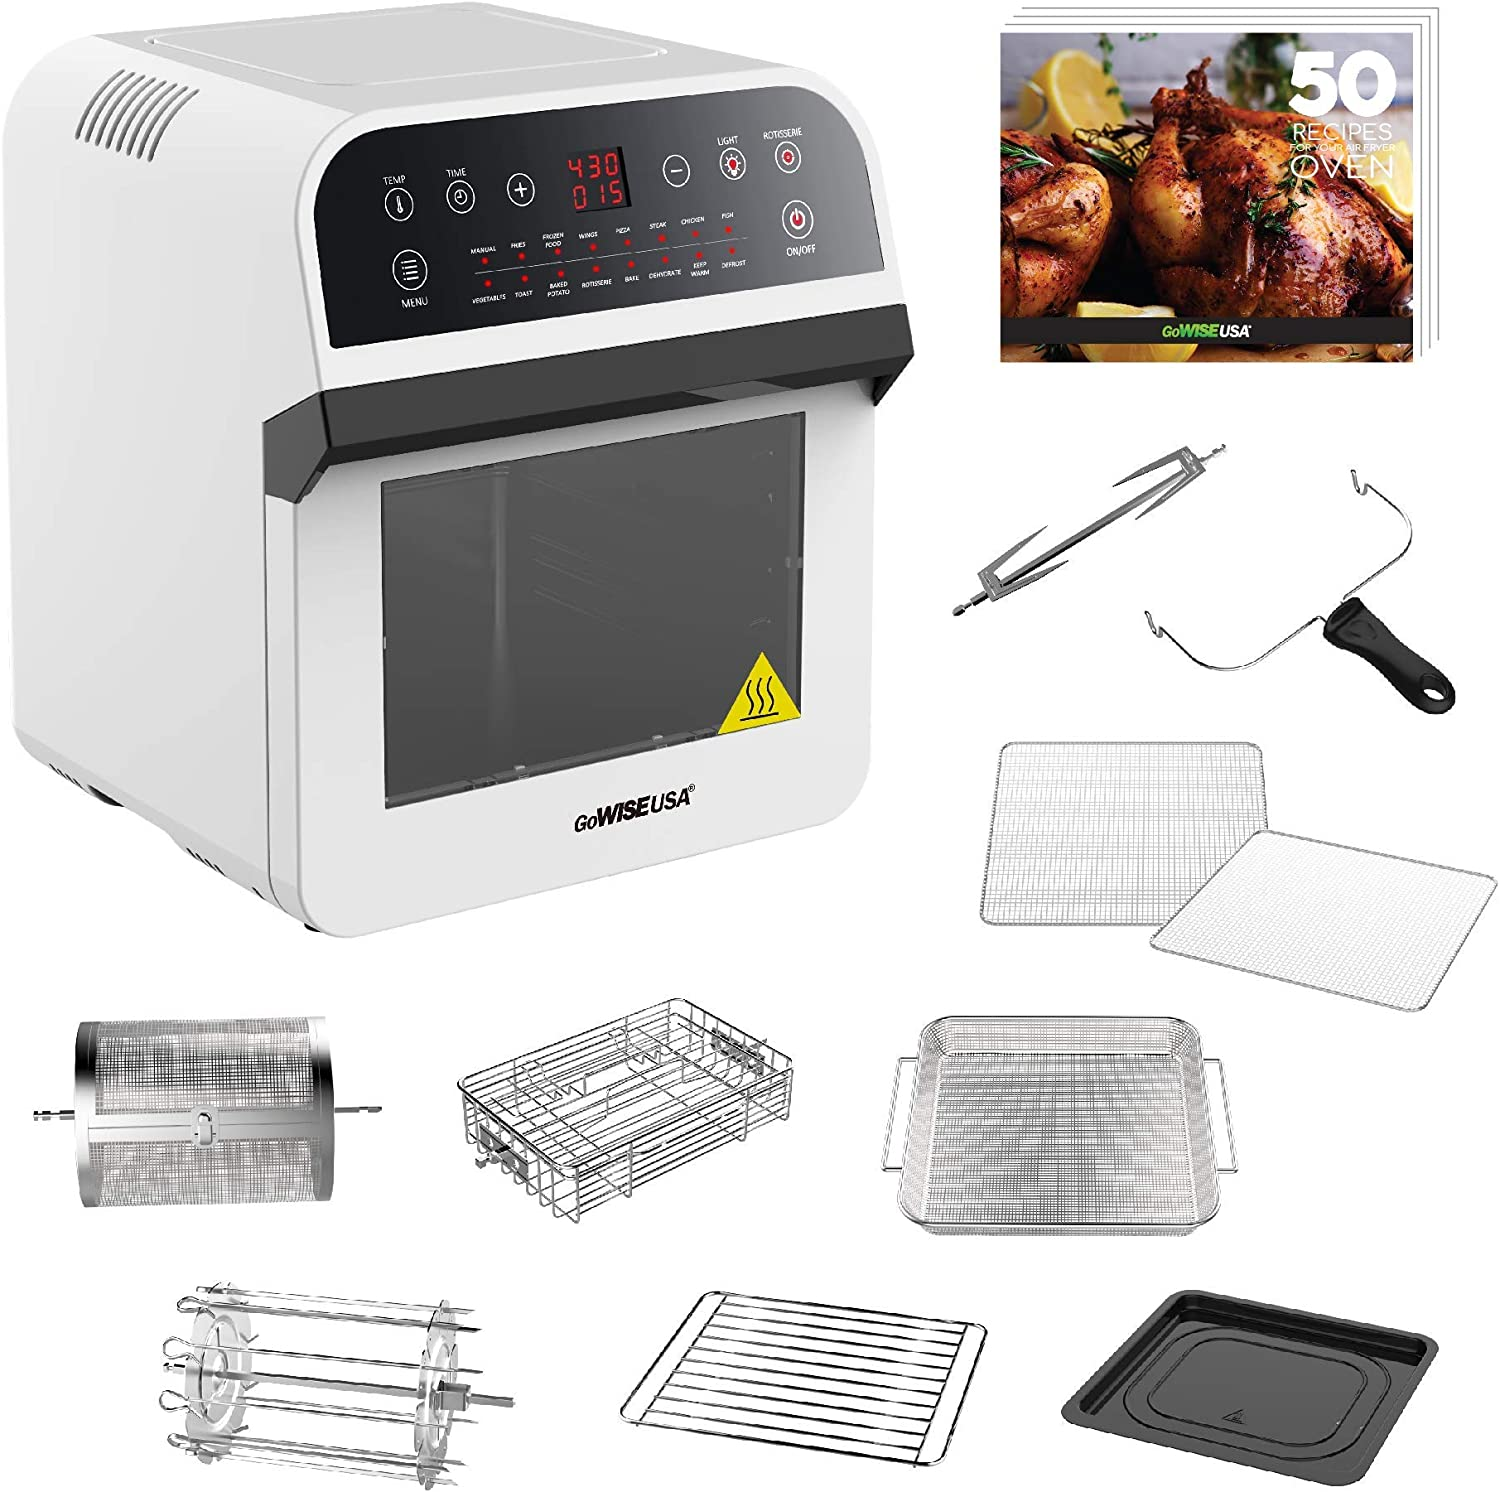 GoWISE USA GW44802-O Deluxe 12.7-Quarts 15-in-1 Electric Air Fryer Oven w/Rotisserie and Dehydrator + 50 Recipes, QT, White (Renewed)